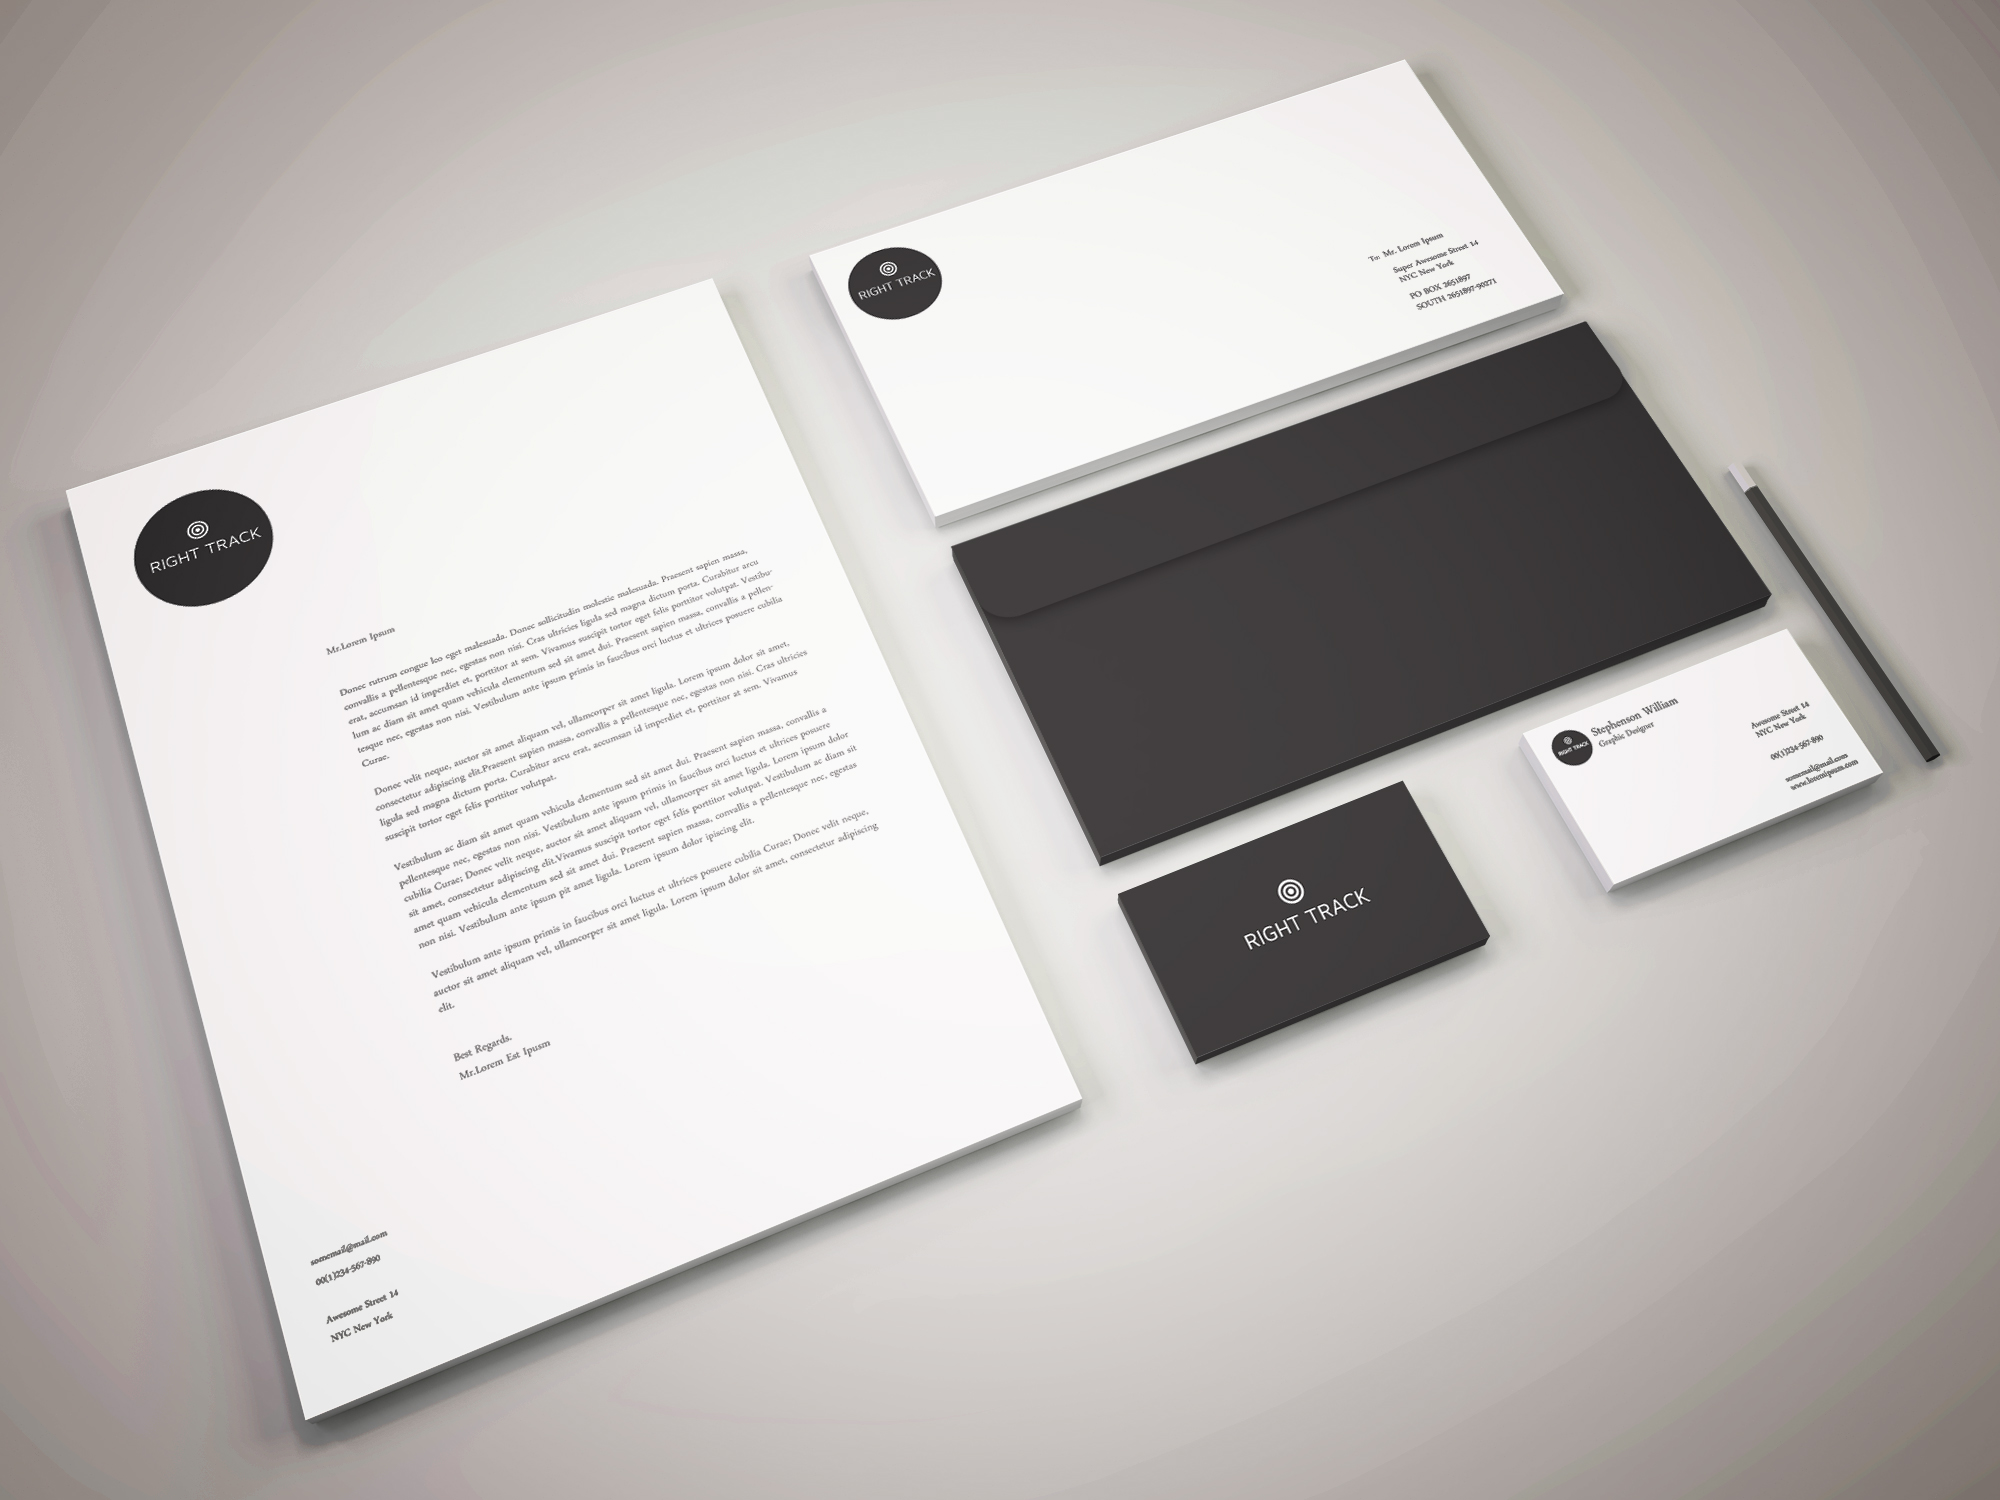 Stunning Stationary Design For Right Track Consulting Firm